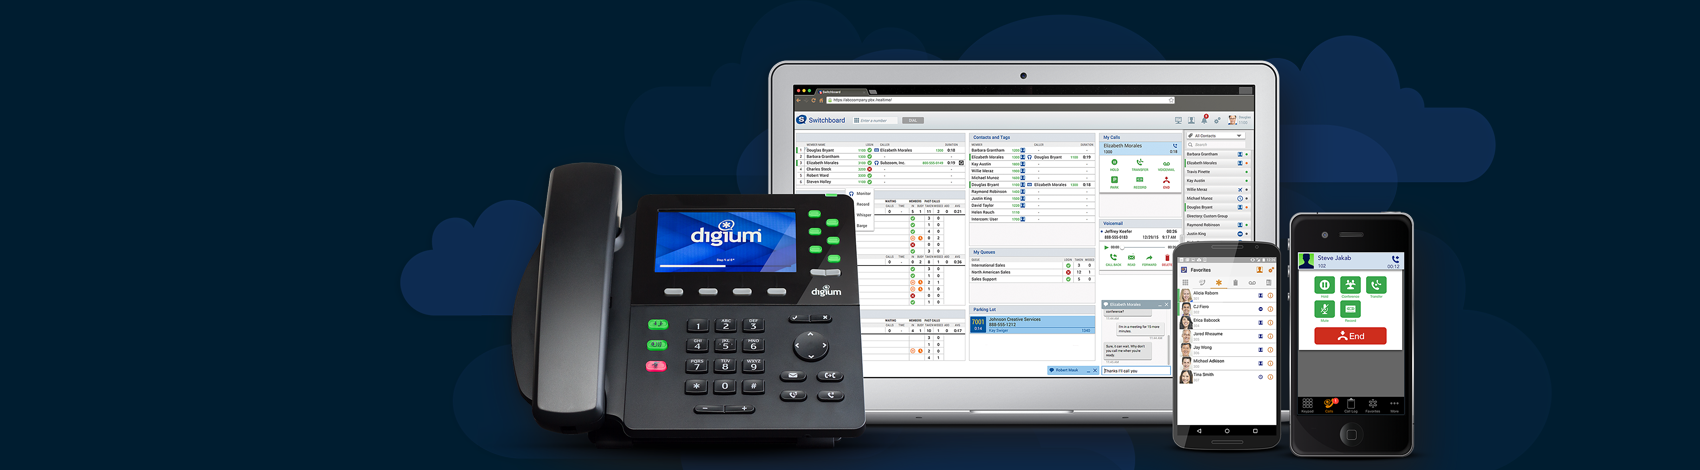 Digium IP Business Phone Systems